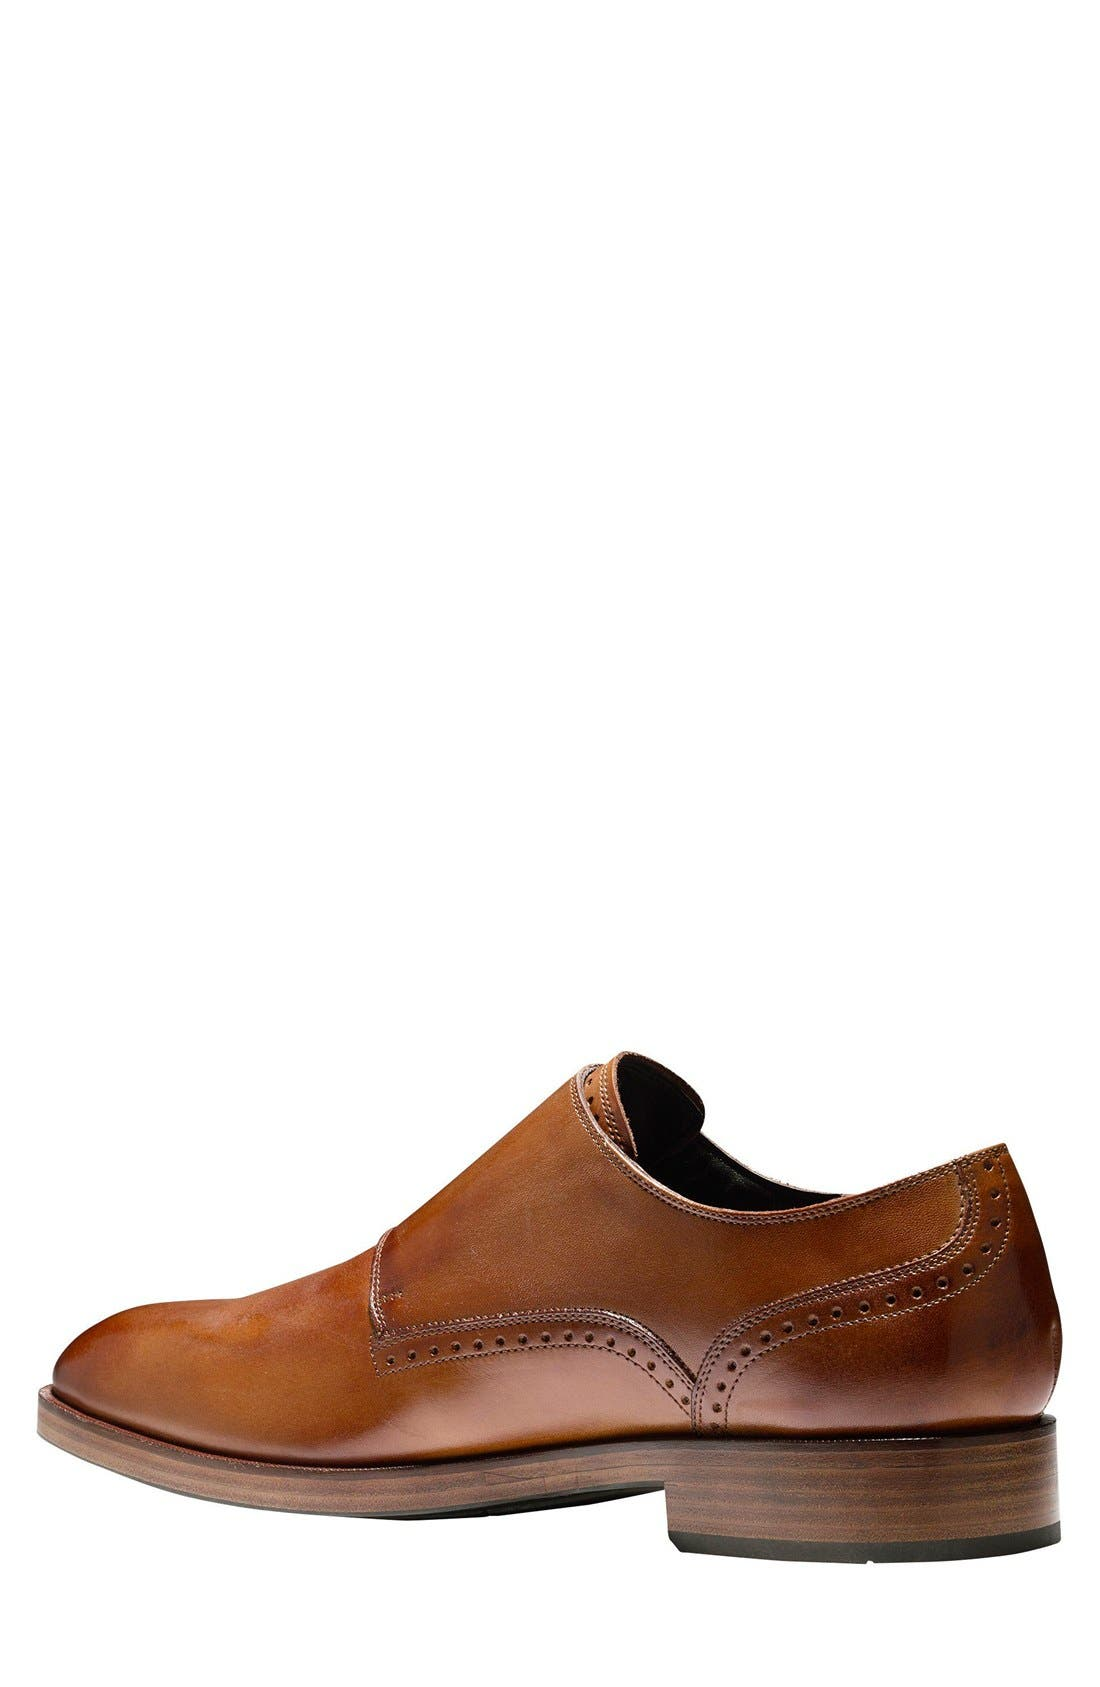 'Harrison' Double Monk Strap Shoe,                             Alternate thumbnail 8, color,                             BRITISH TAN LEATHER